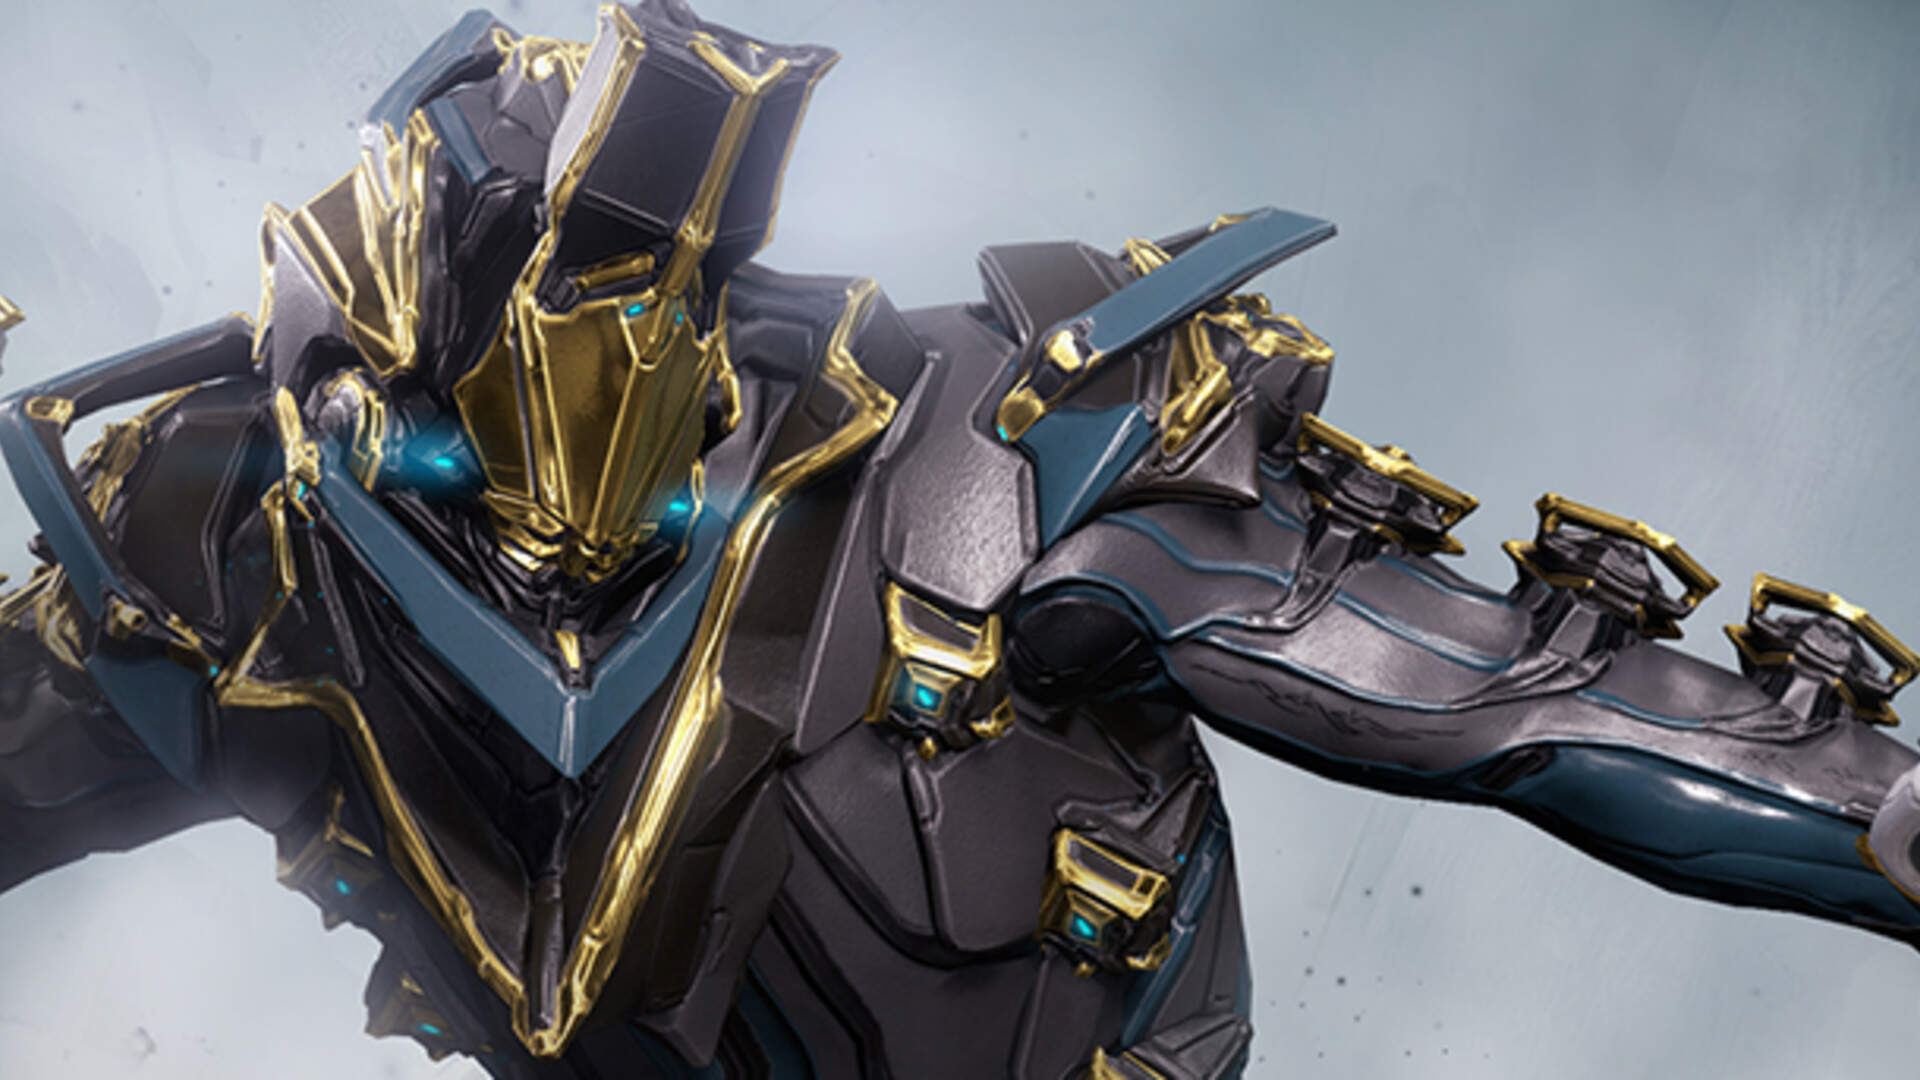 Warframe's Journey From Just Another F2P Shooter to One of the Best Games of the Generation